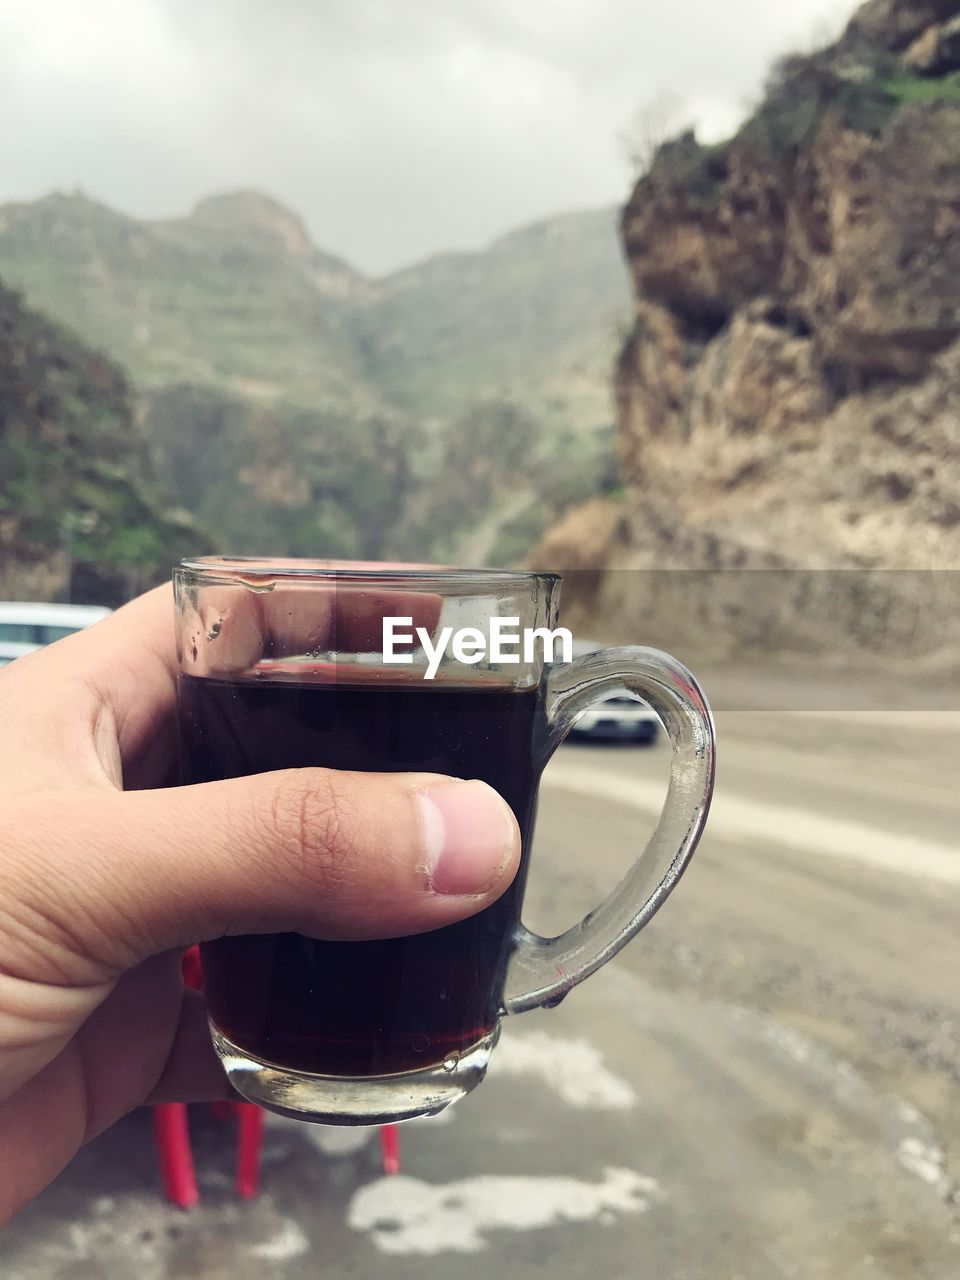 human hand, drink, hand, cup, human body part, refreshment, mug, food and drink, mountain, one person, holding, coffee, real people, day, coffee cup, lifestyles, coffee - drink, focus on foreground, hot drink, finger, body part, mountain range, glass, outdoors, tea cup